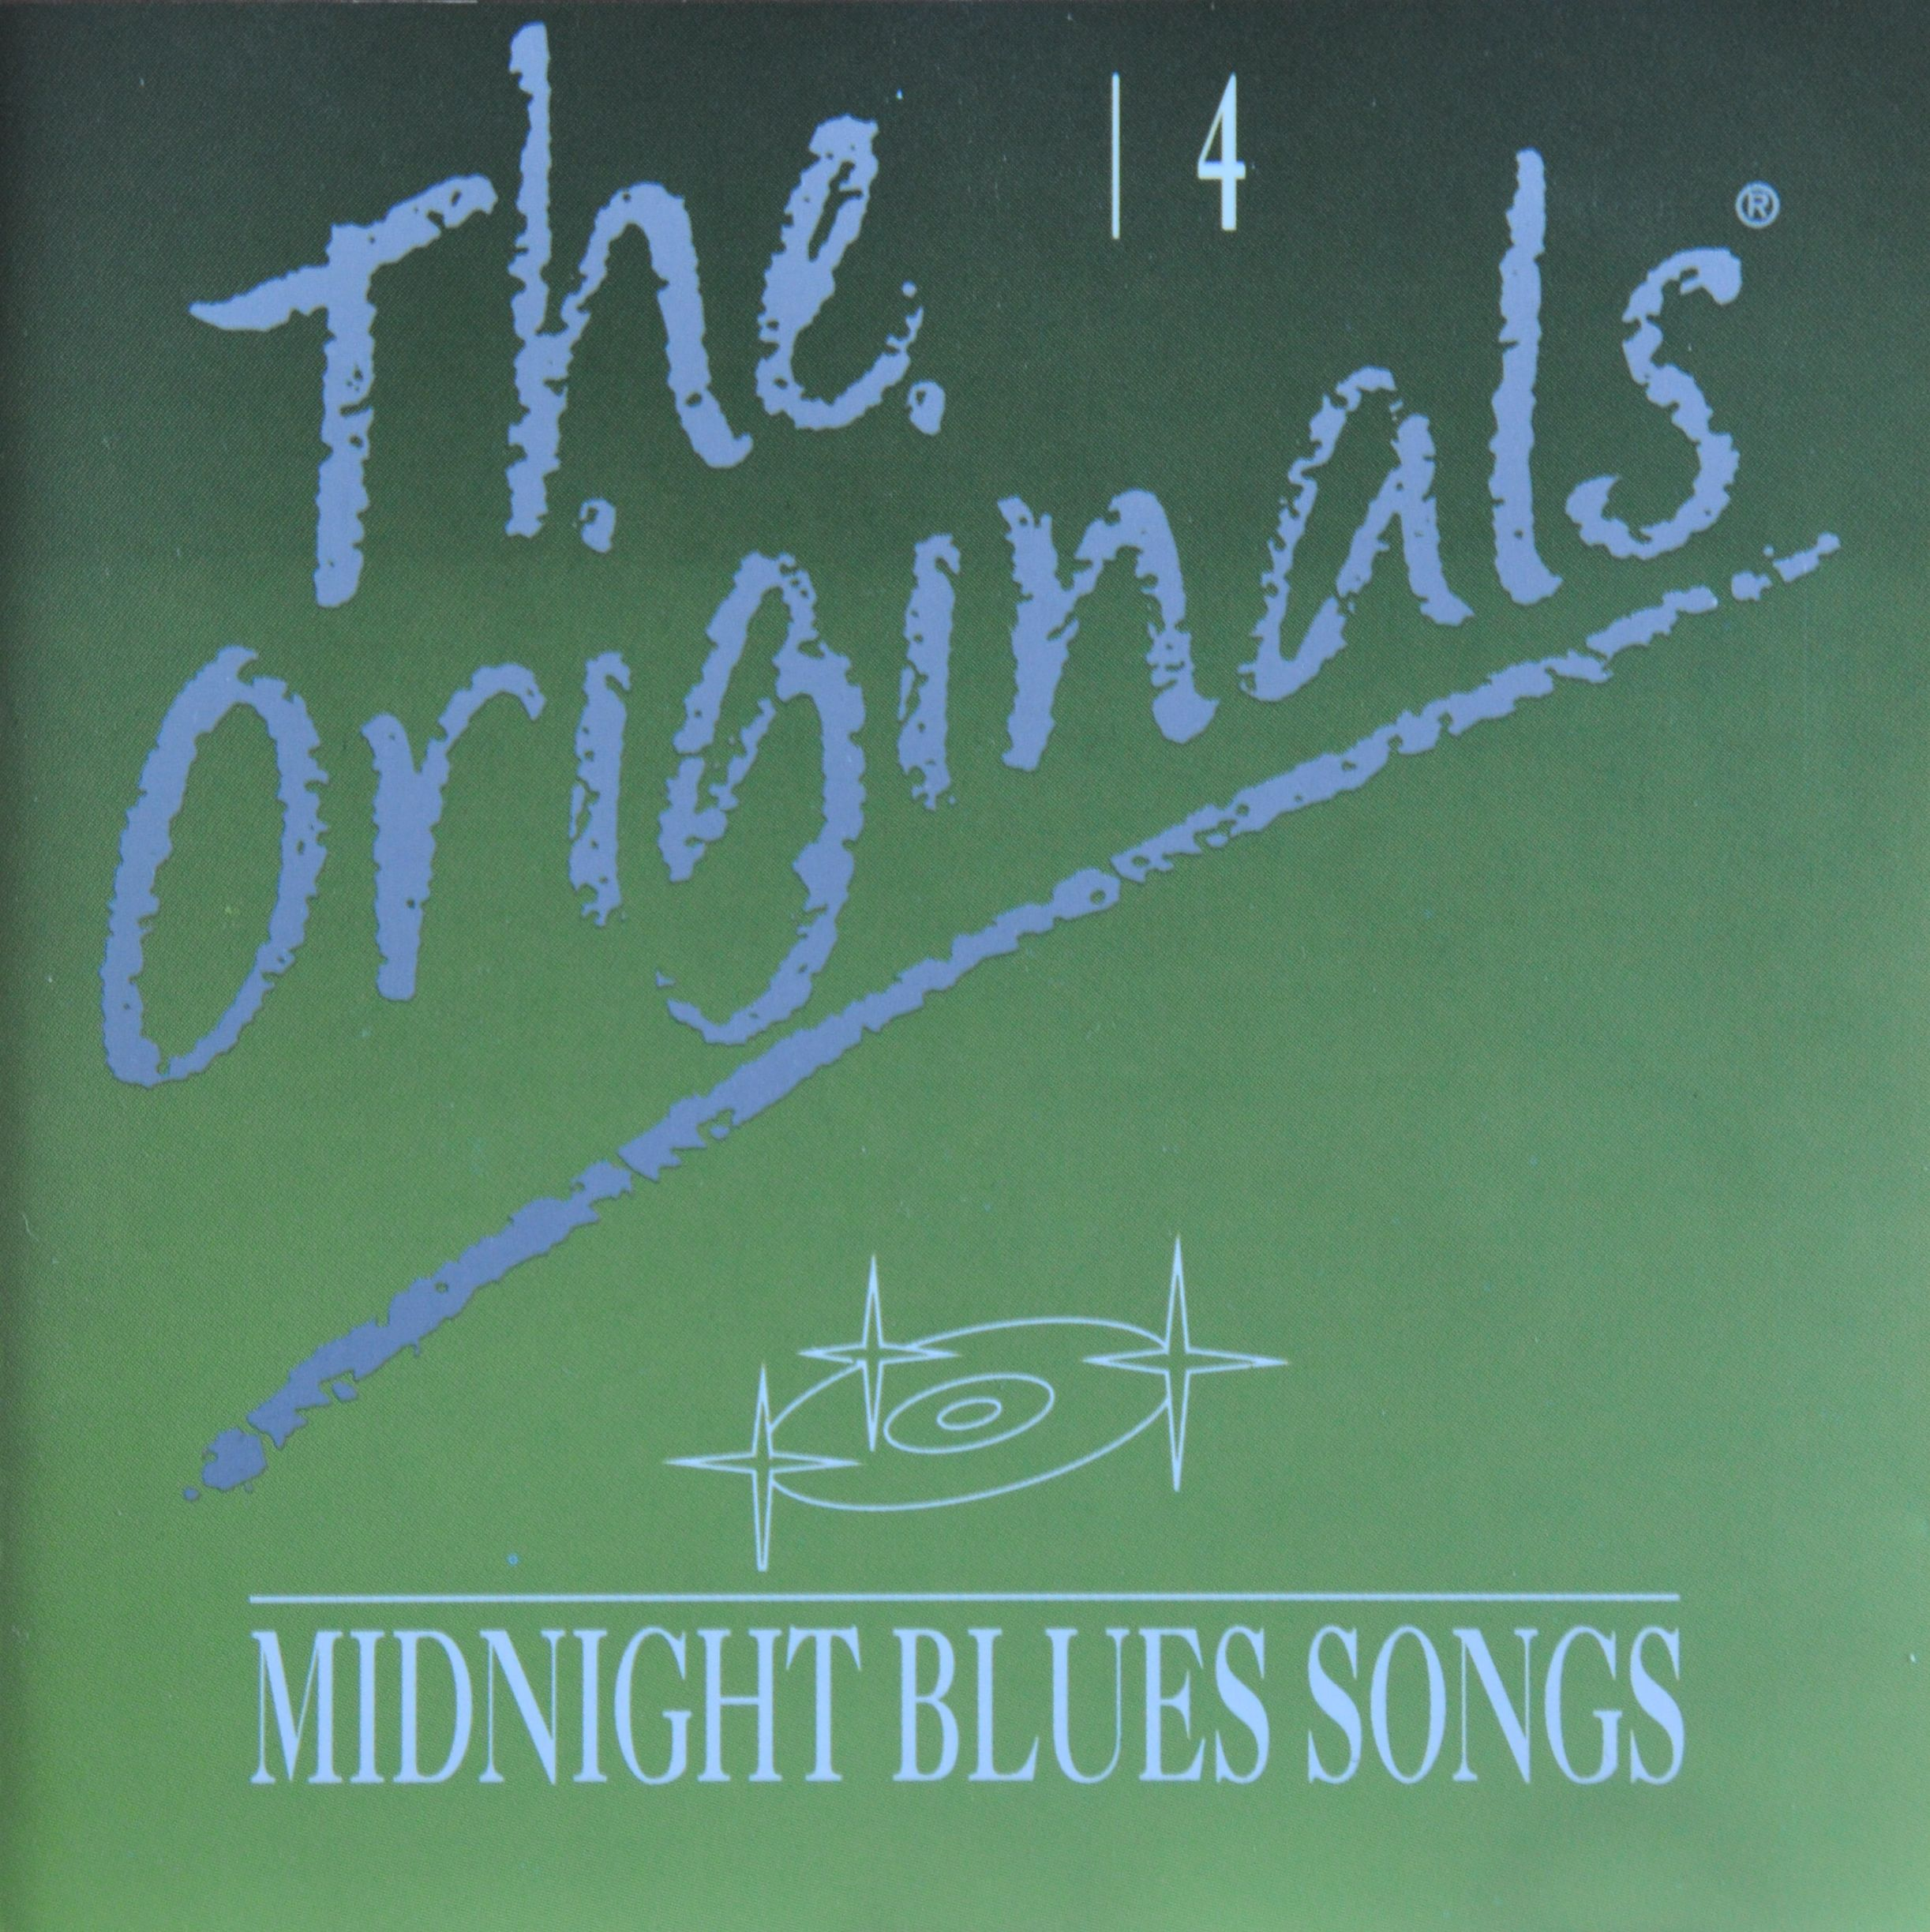 jaquettes2/The-Originals_04_Midnight-Blues-Songs.jpg